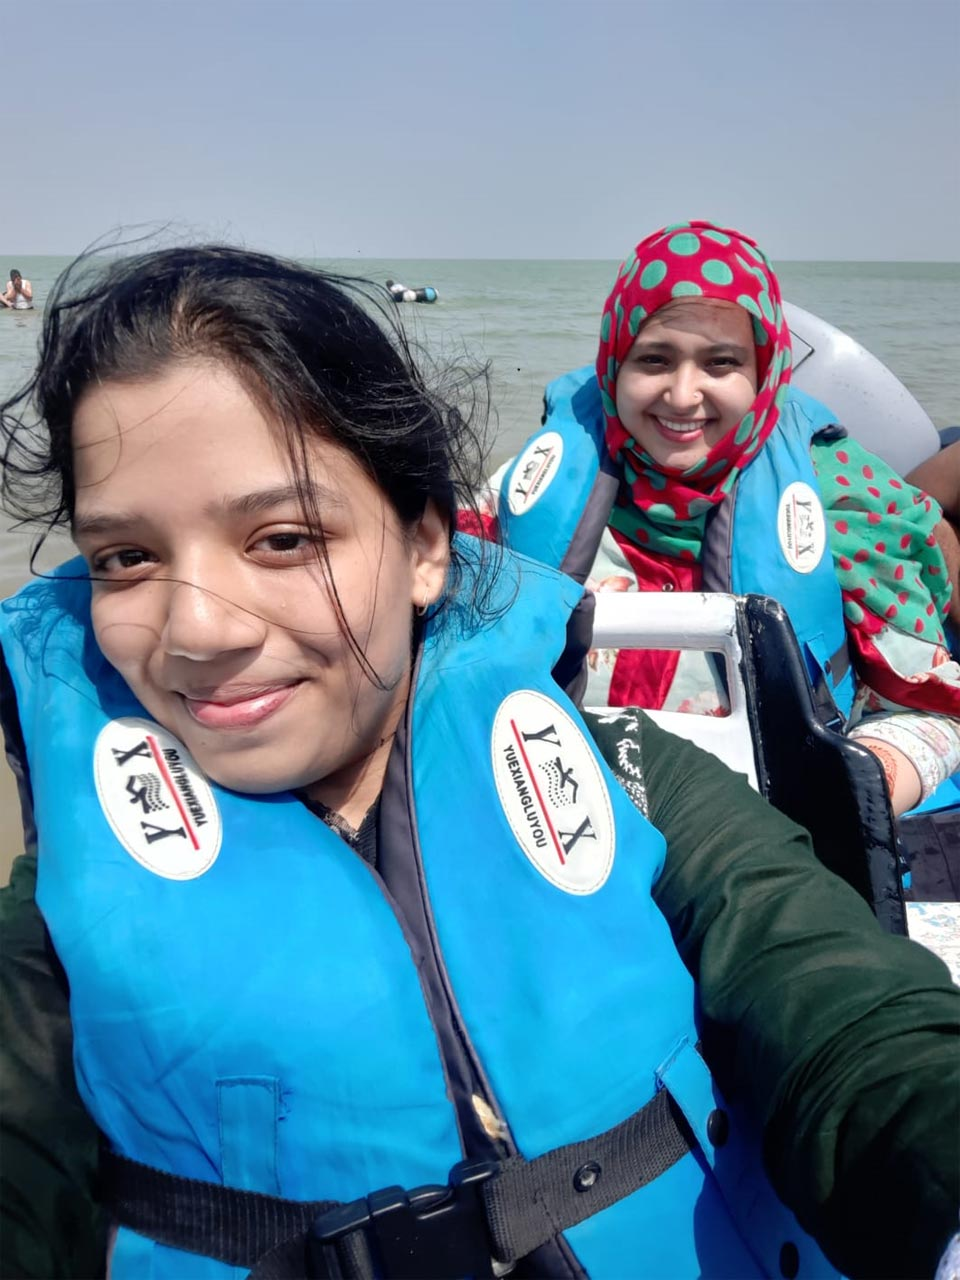 Zoya and Samia in lifejackets, ready for the boat journey.